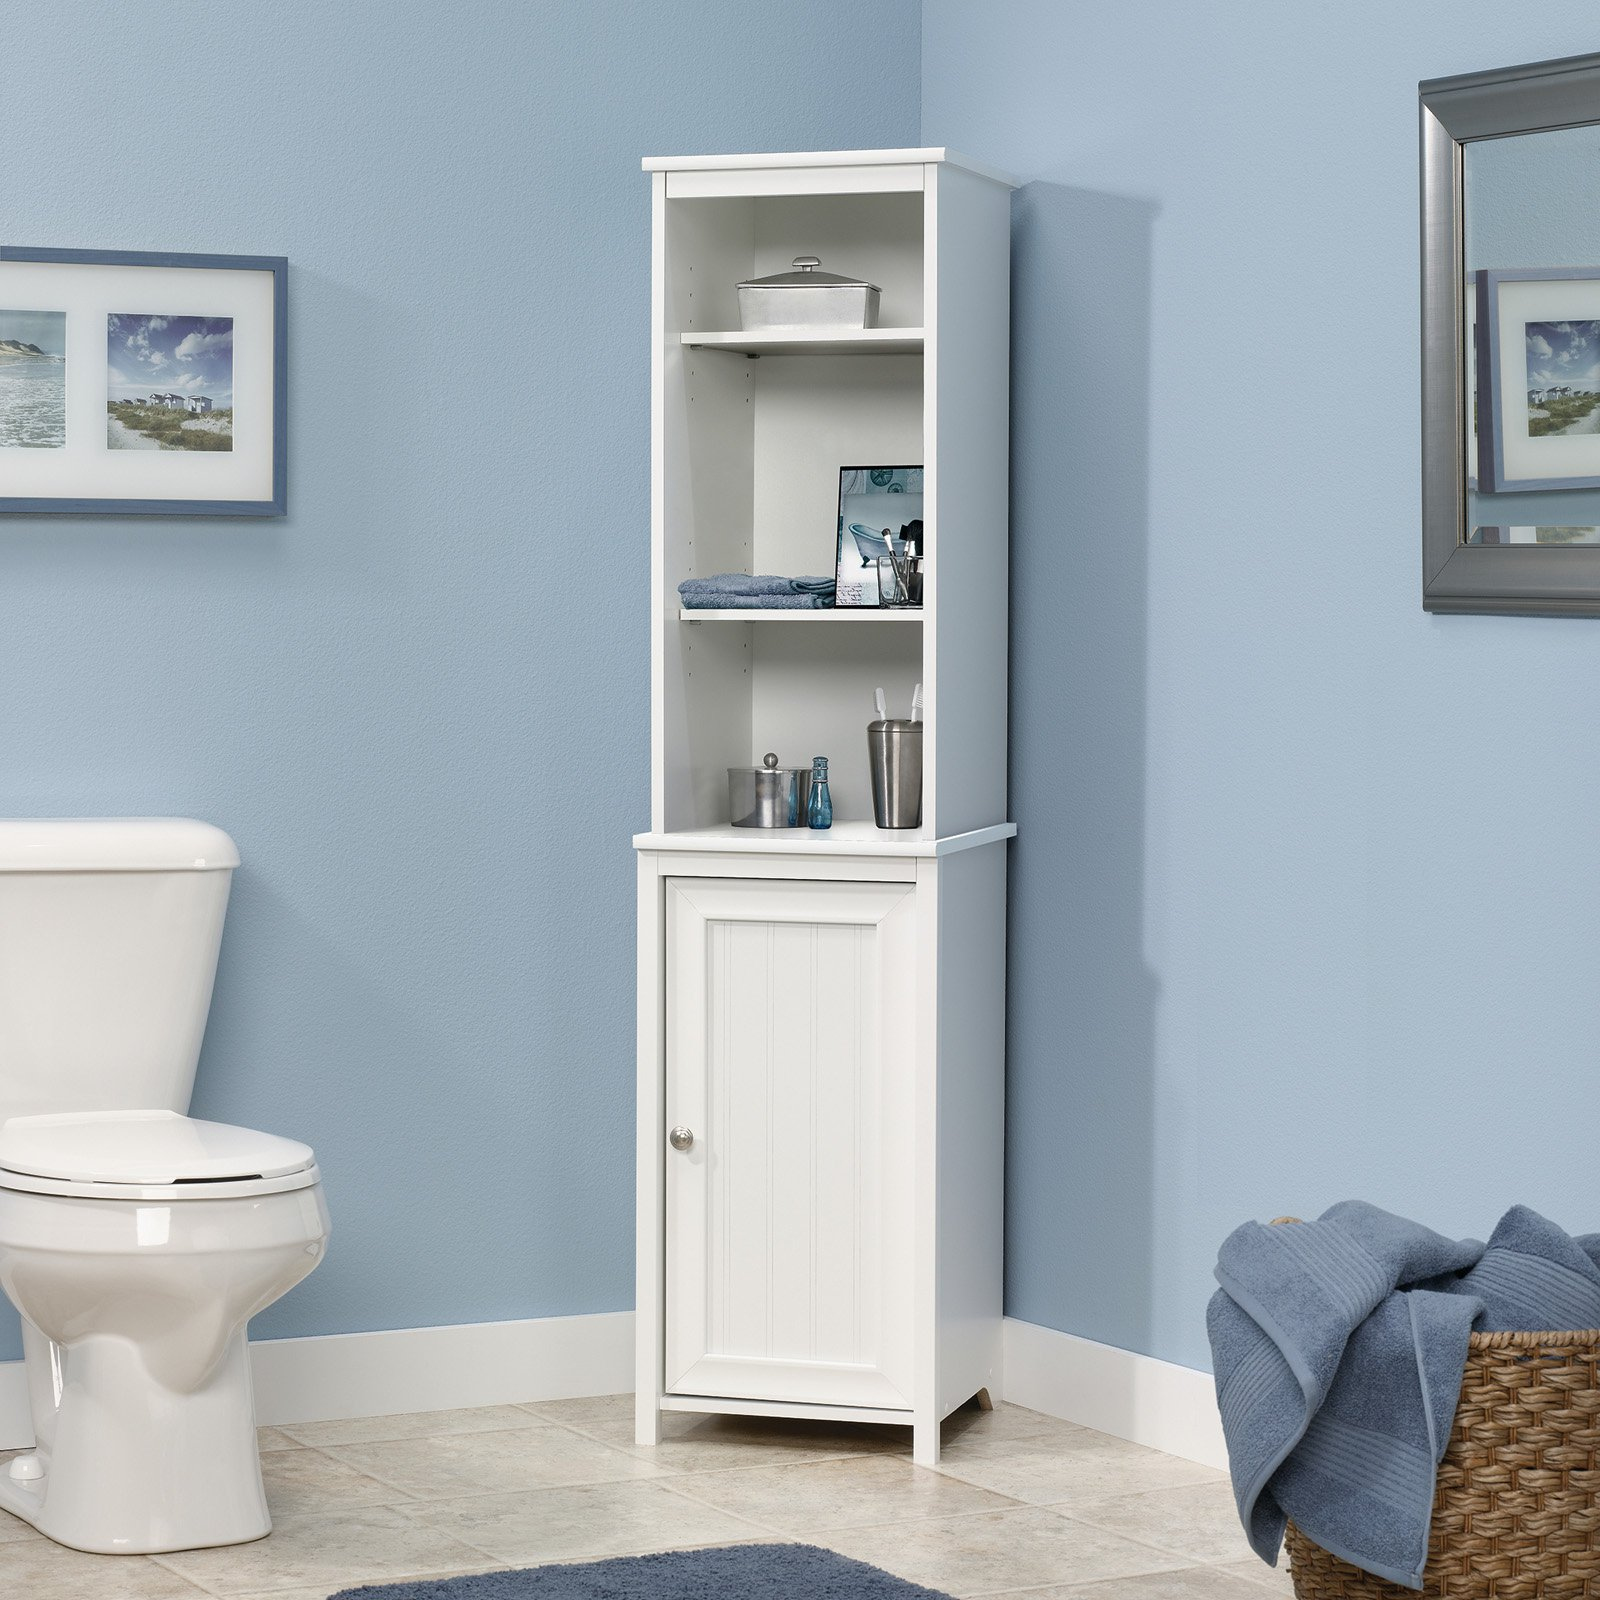 Mainstays Bathroom Tower with Hamper, Oil Rubbed Bronze - Walmart.com